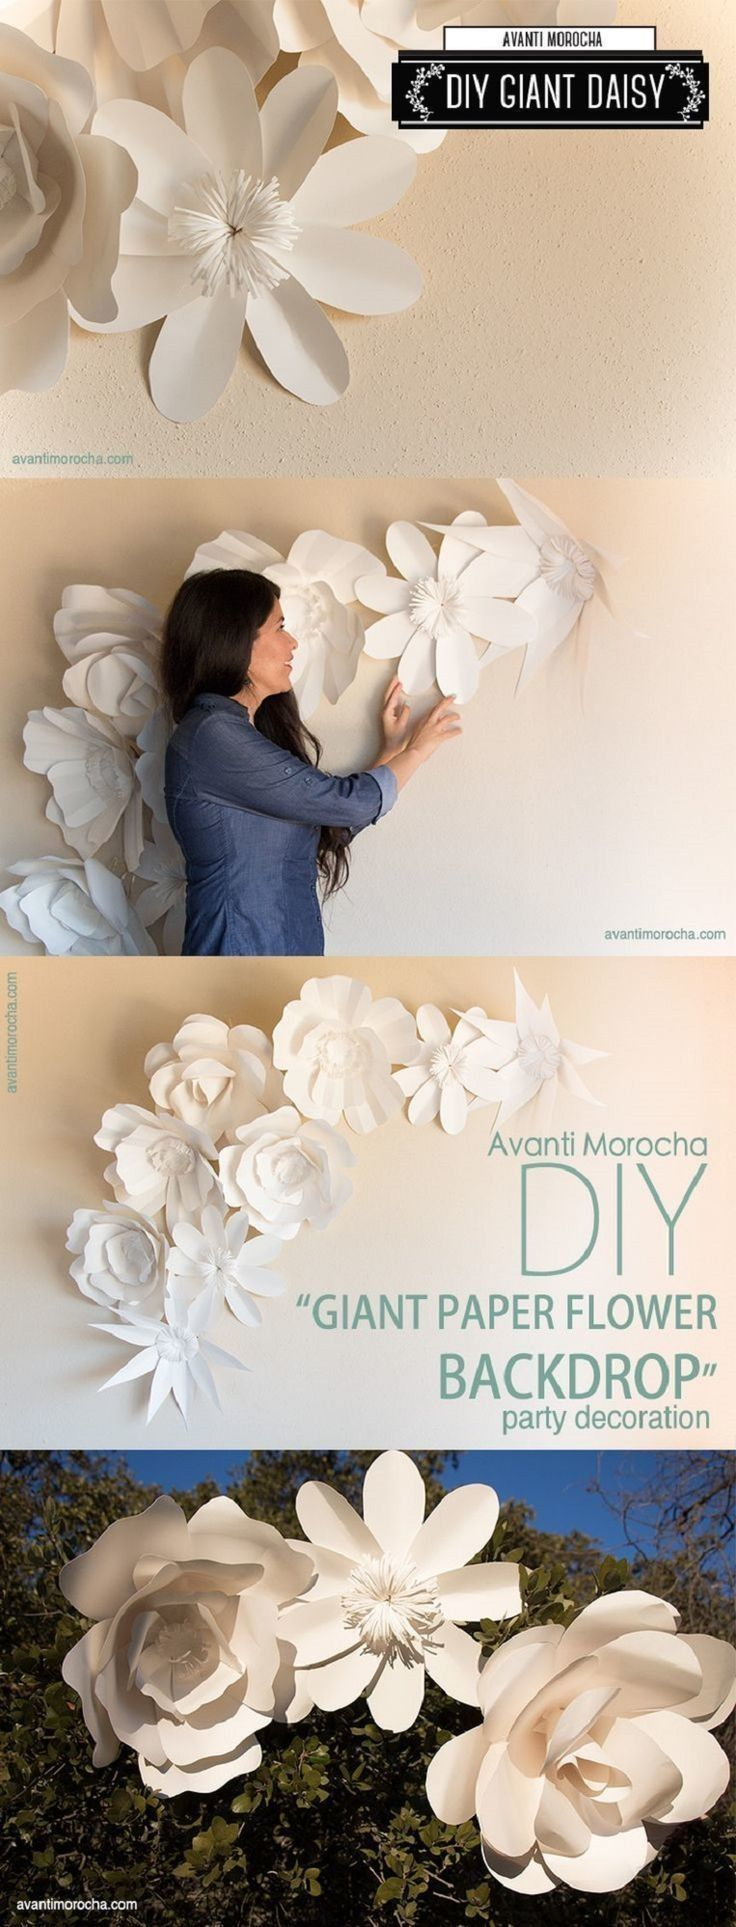 Add flowers to a brighten a wall.